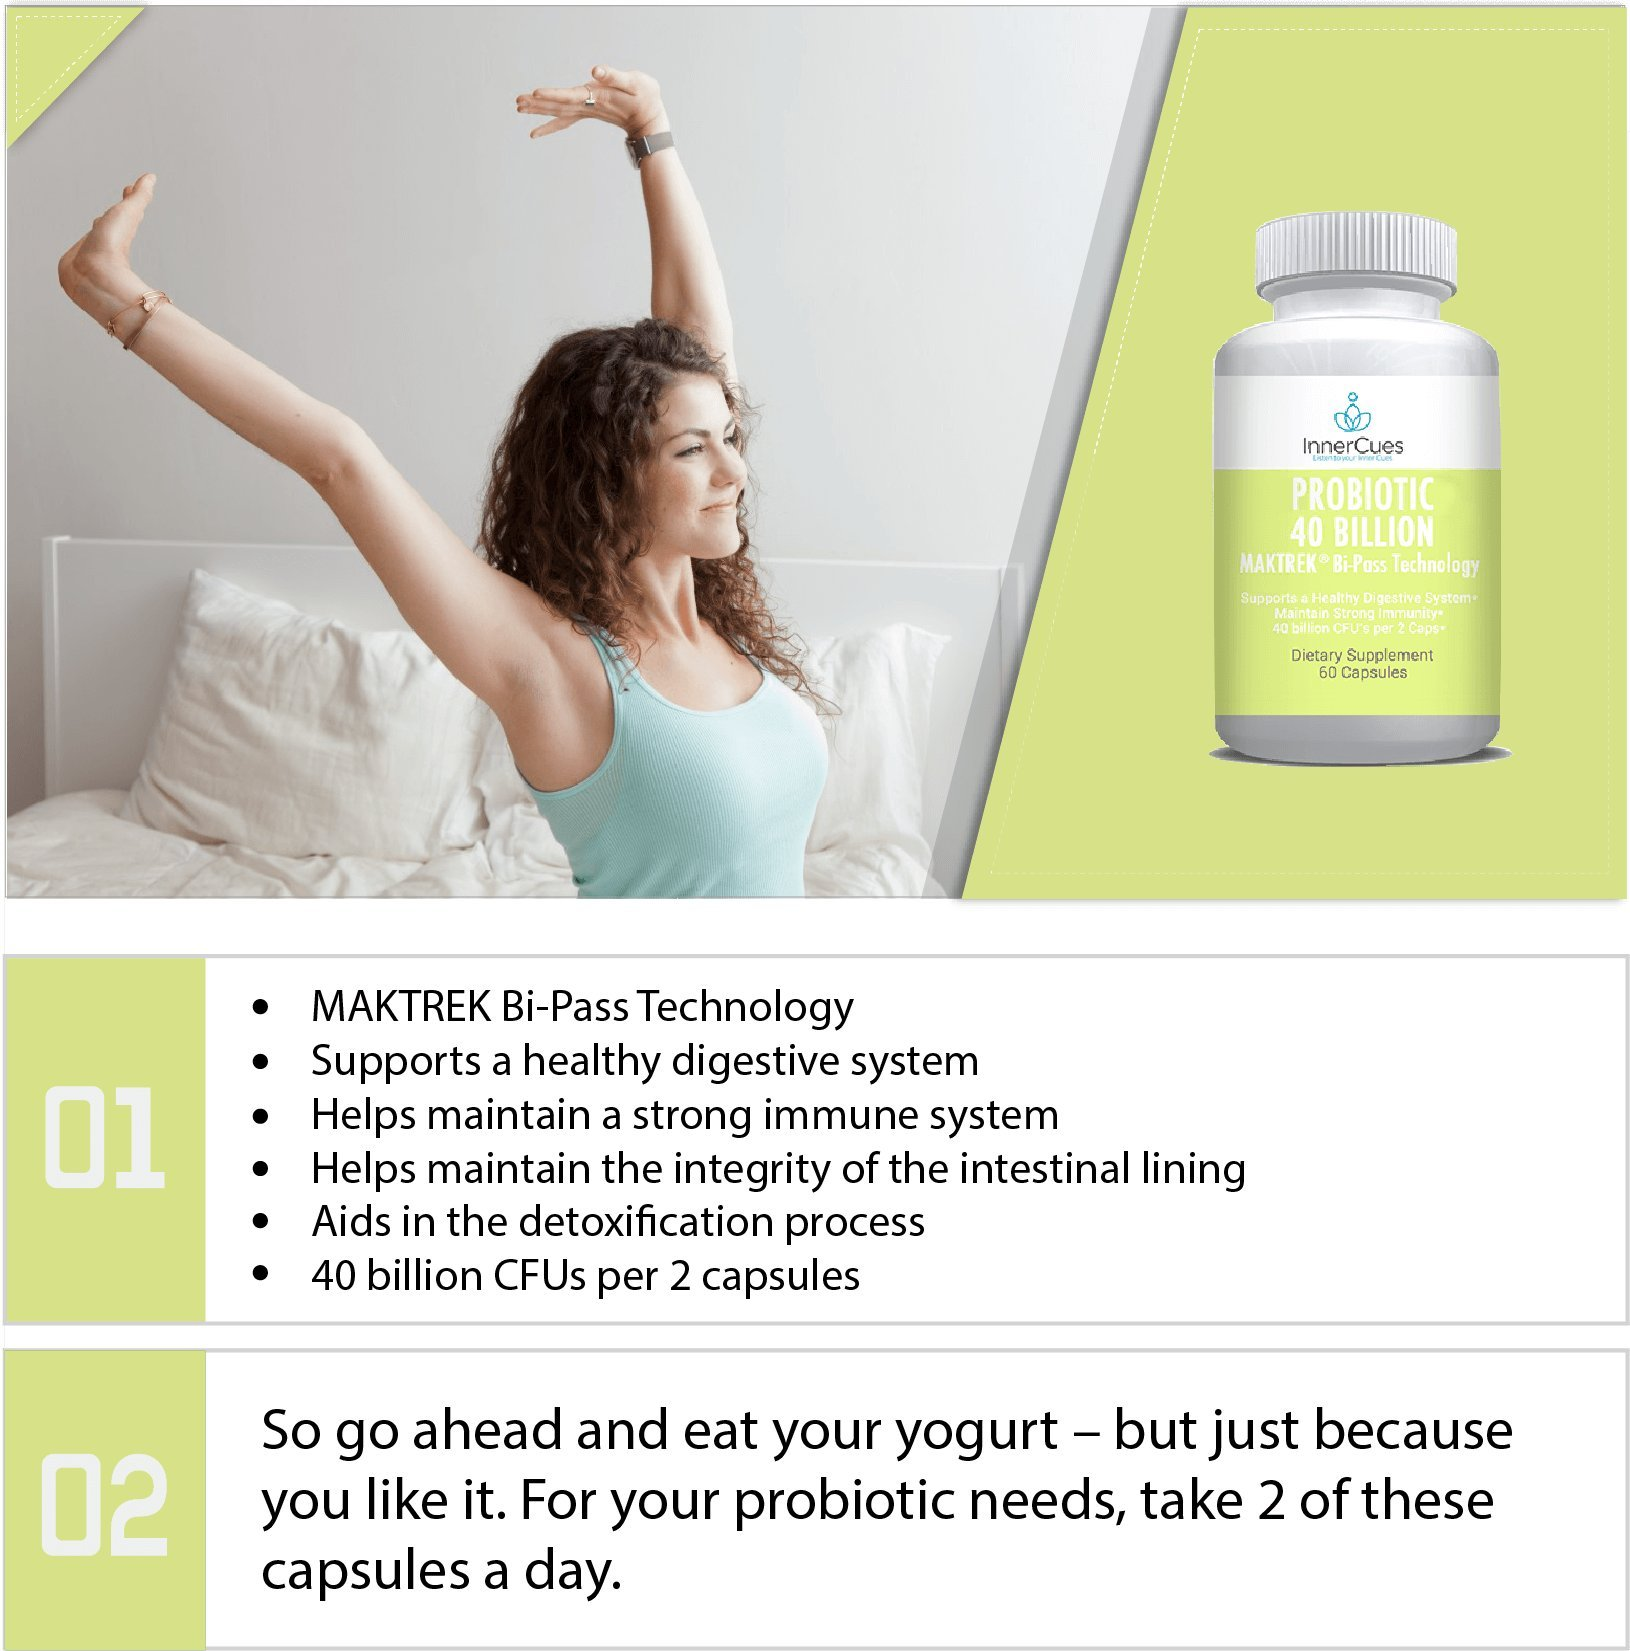 Probiotic Supplement for Men and Women, 40 Billion CFU Probiotics. Natural Digestive Immune System Booster. Advanced Pro Biotic Health Essentials Product for Adults, Daily Dietary Capsules 60 Caps